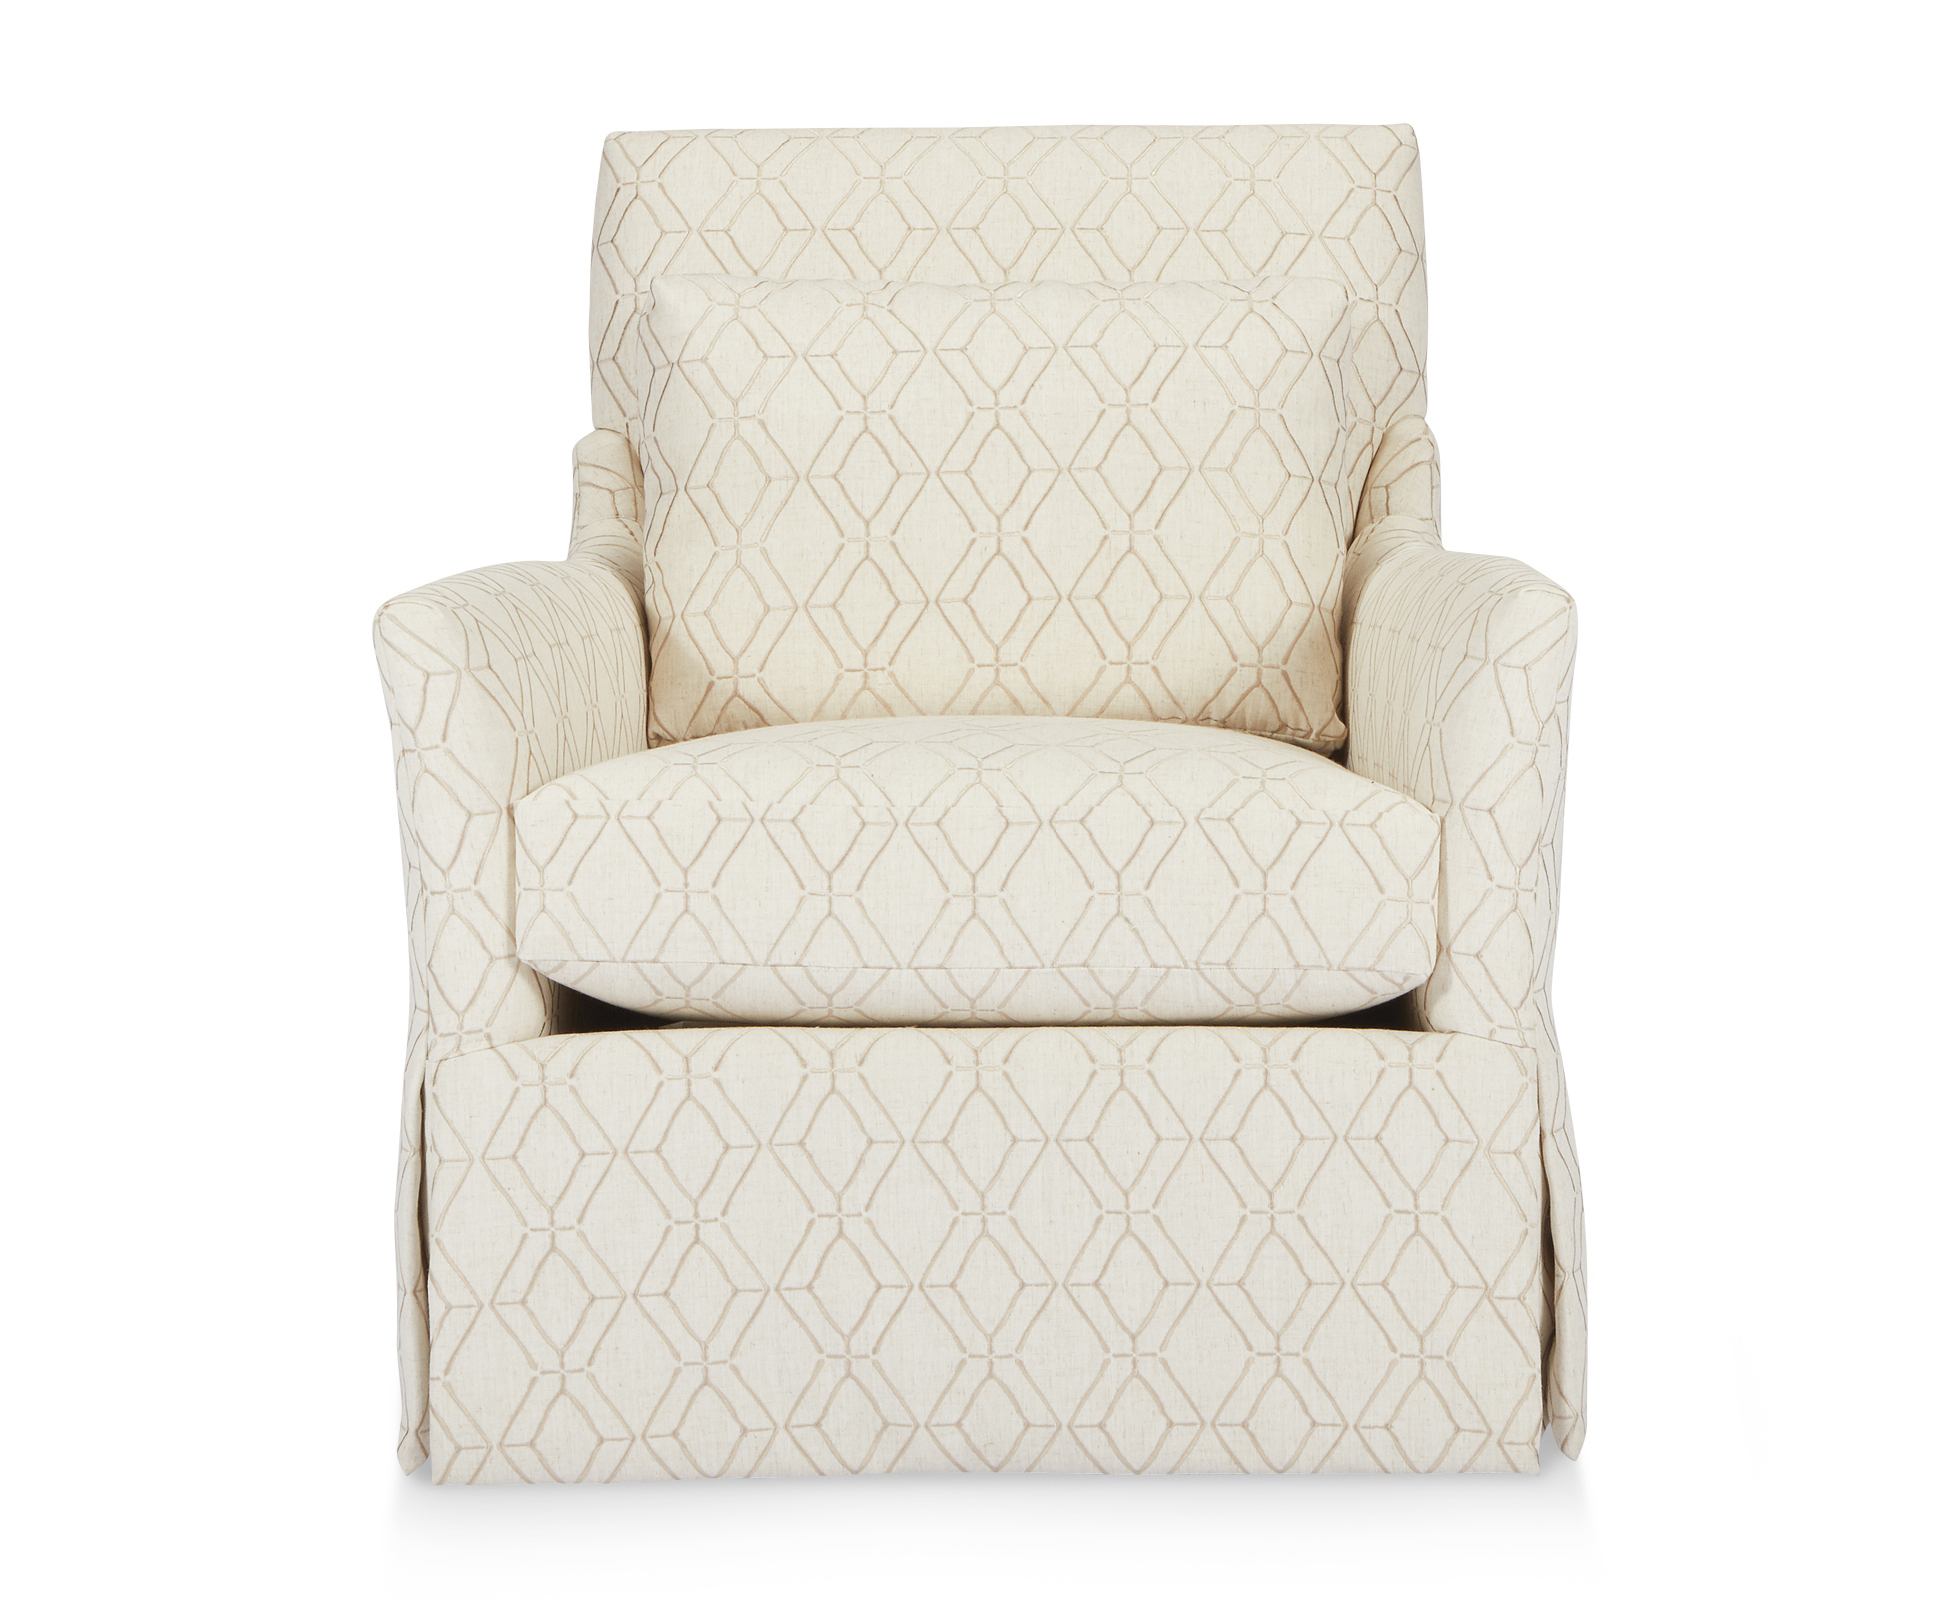 adrianah swivel rocker